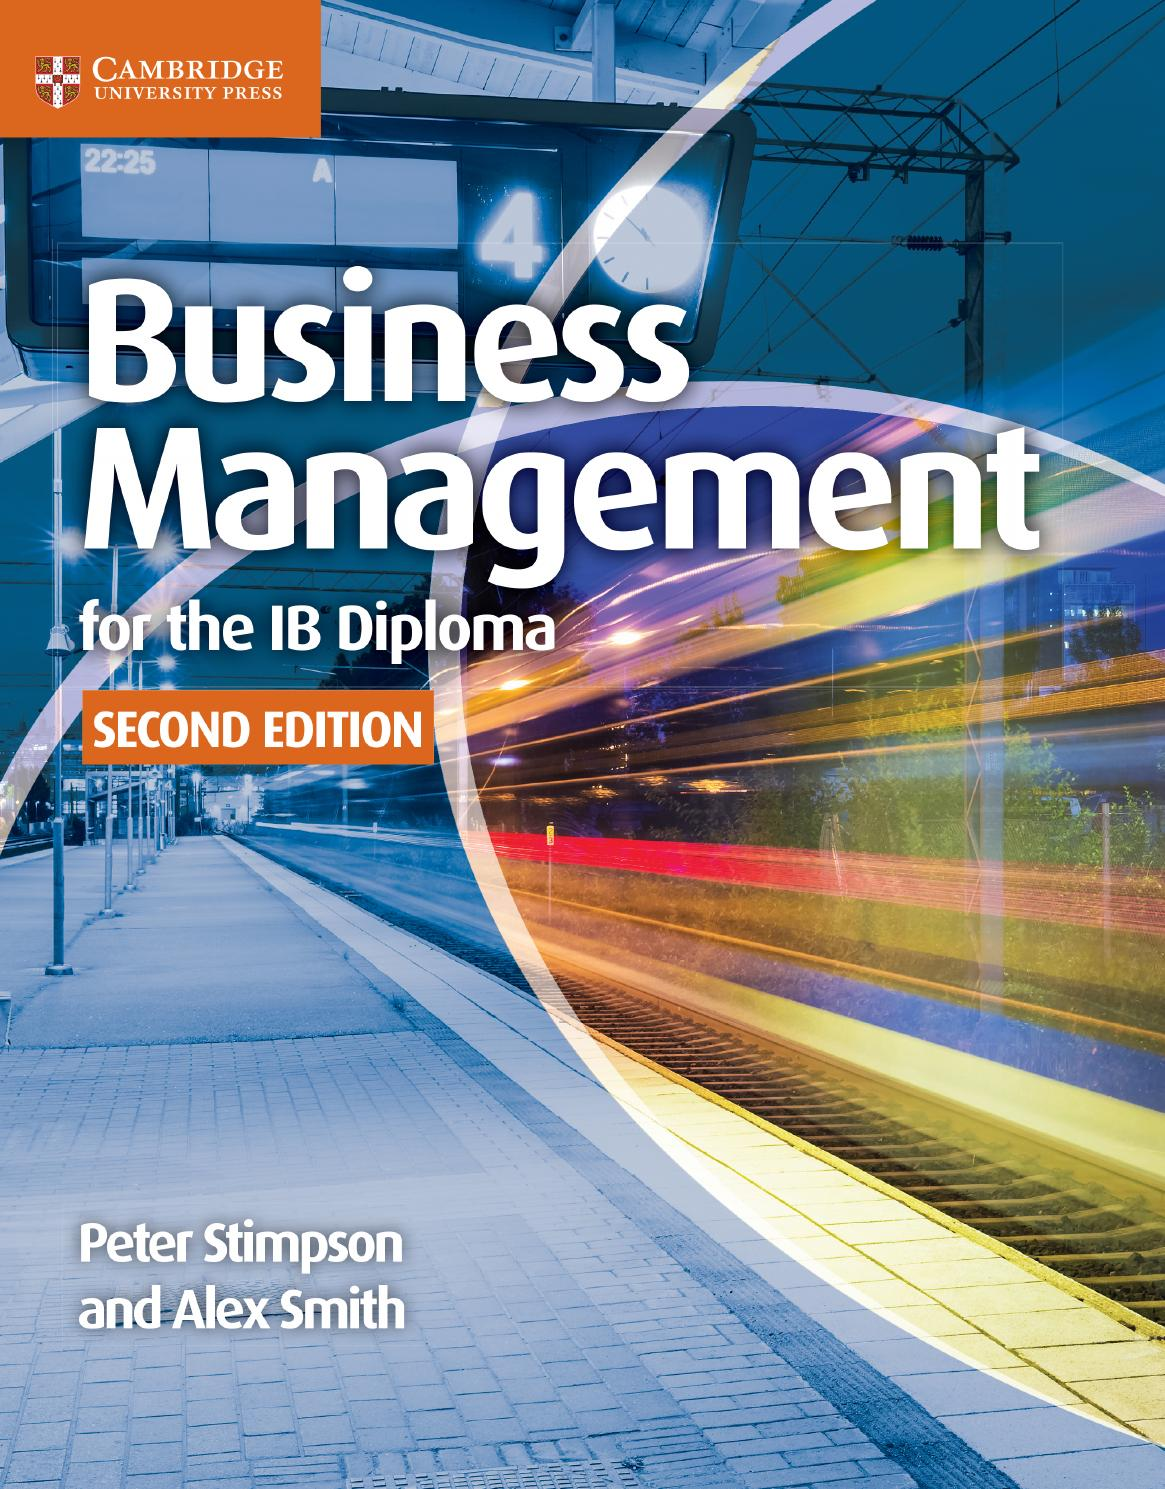 Business Management For The Ib Diploma Second Edition By Cambridge University Press Education Issuu